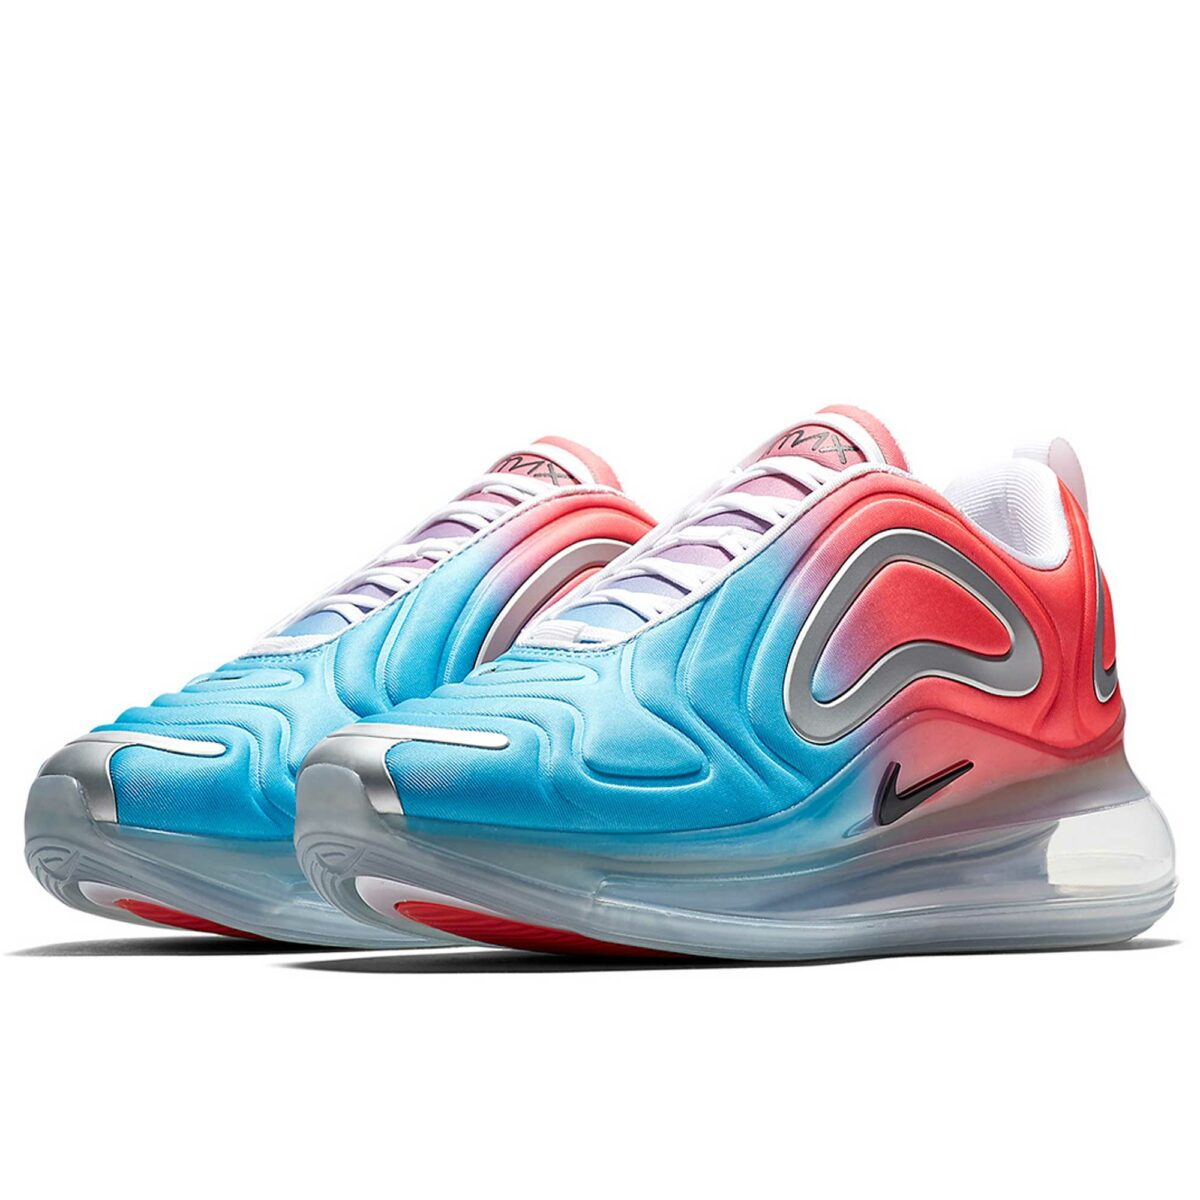 nike air max 720 pink sea AR9293_600 купить